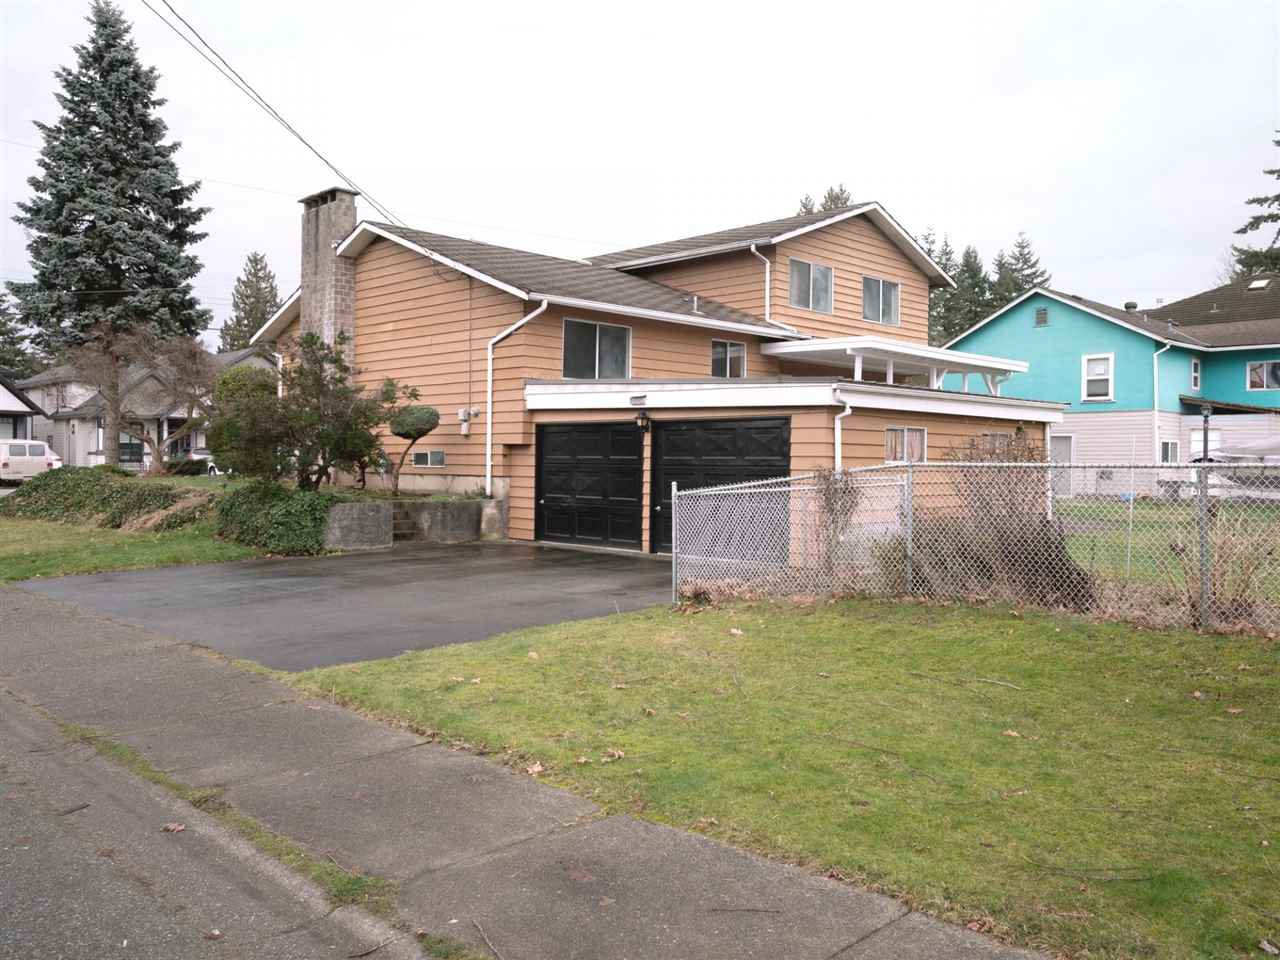 Photo 19: Photos: 14202 110 Avenue in Surrey: Bolivar Heights House for sale (North Surrey)  : MLS®# R2238014